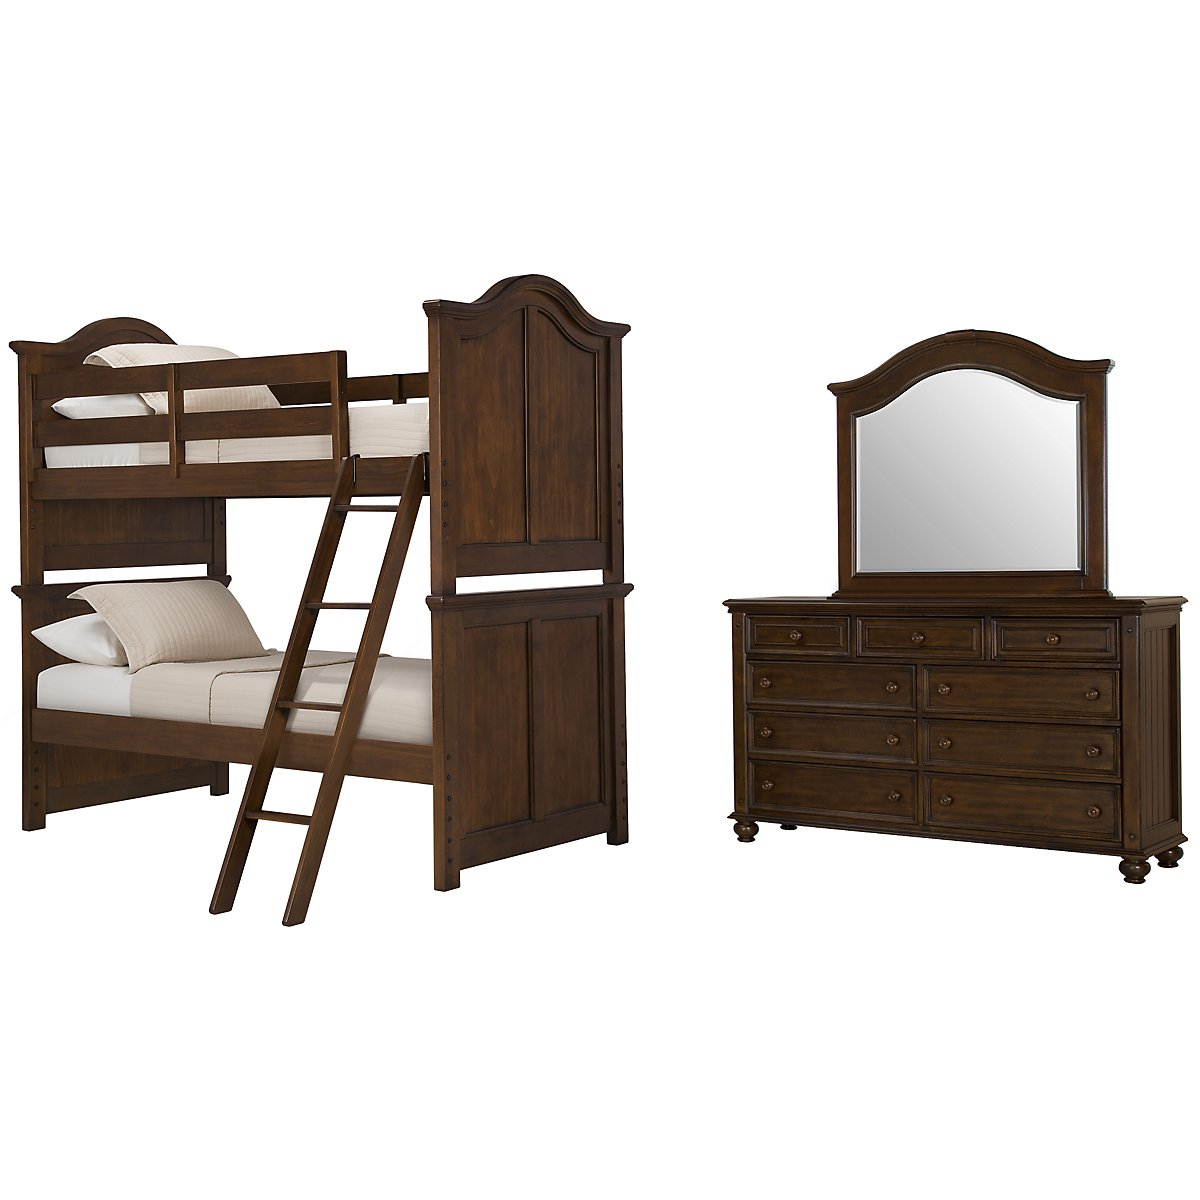 Claire Dark Tone Bunk Bed Bedroom